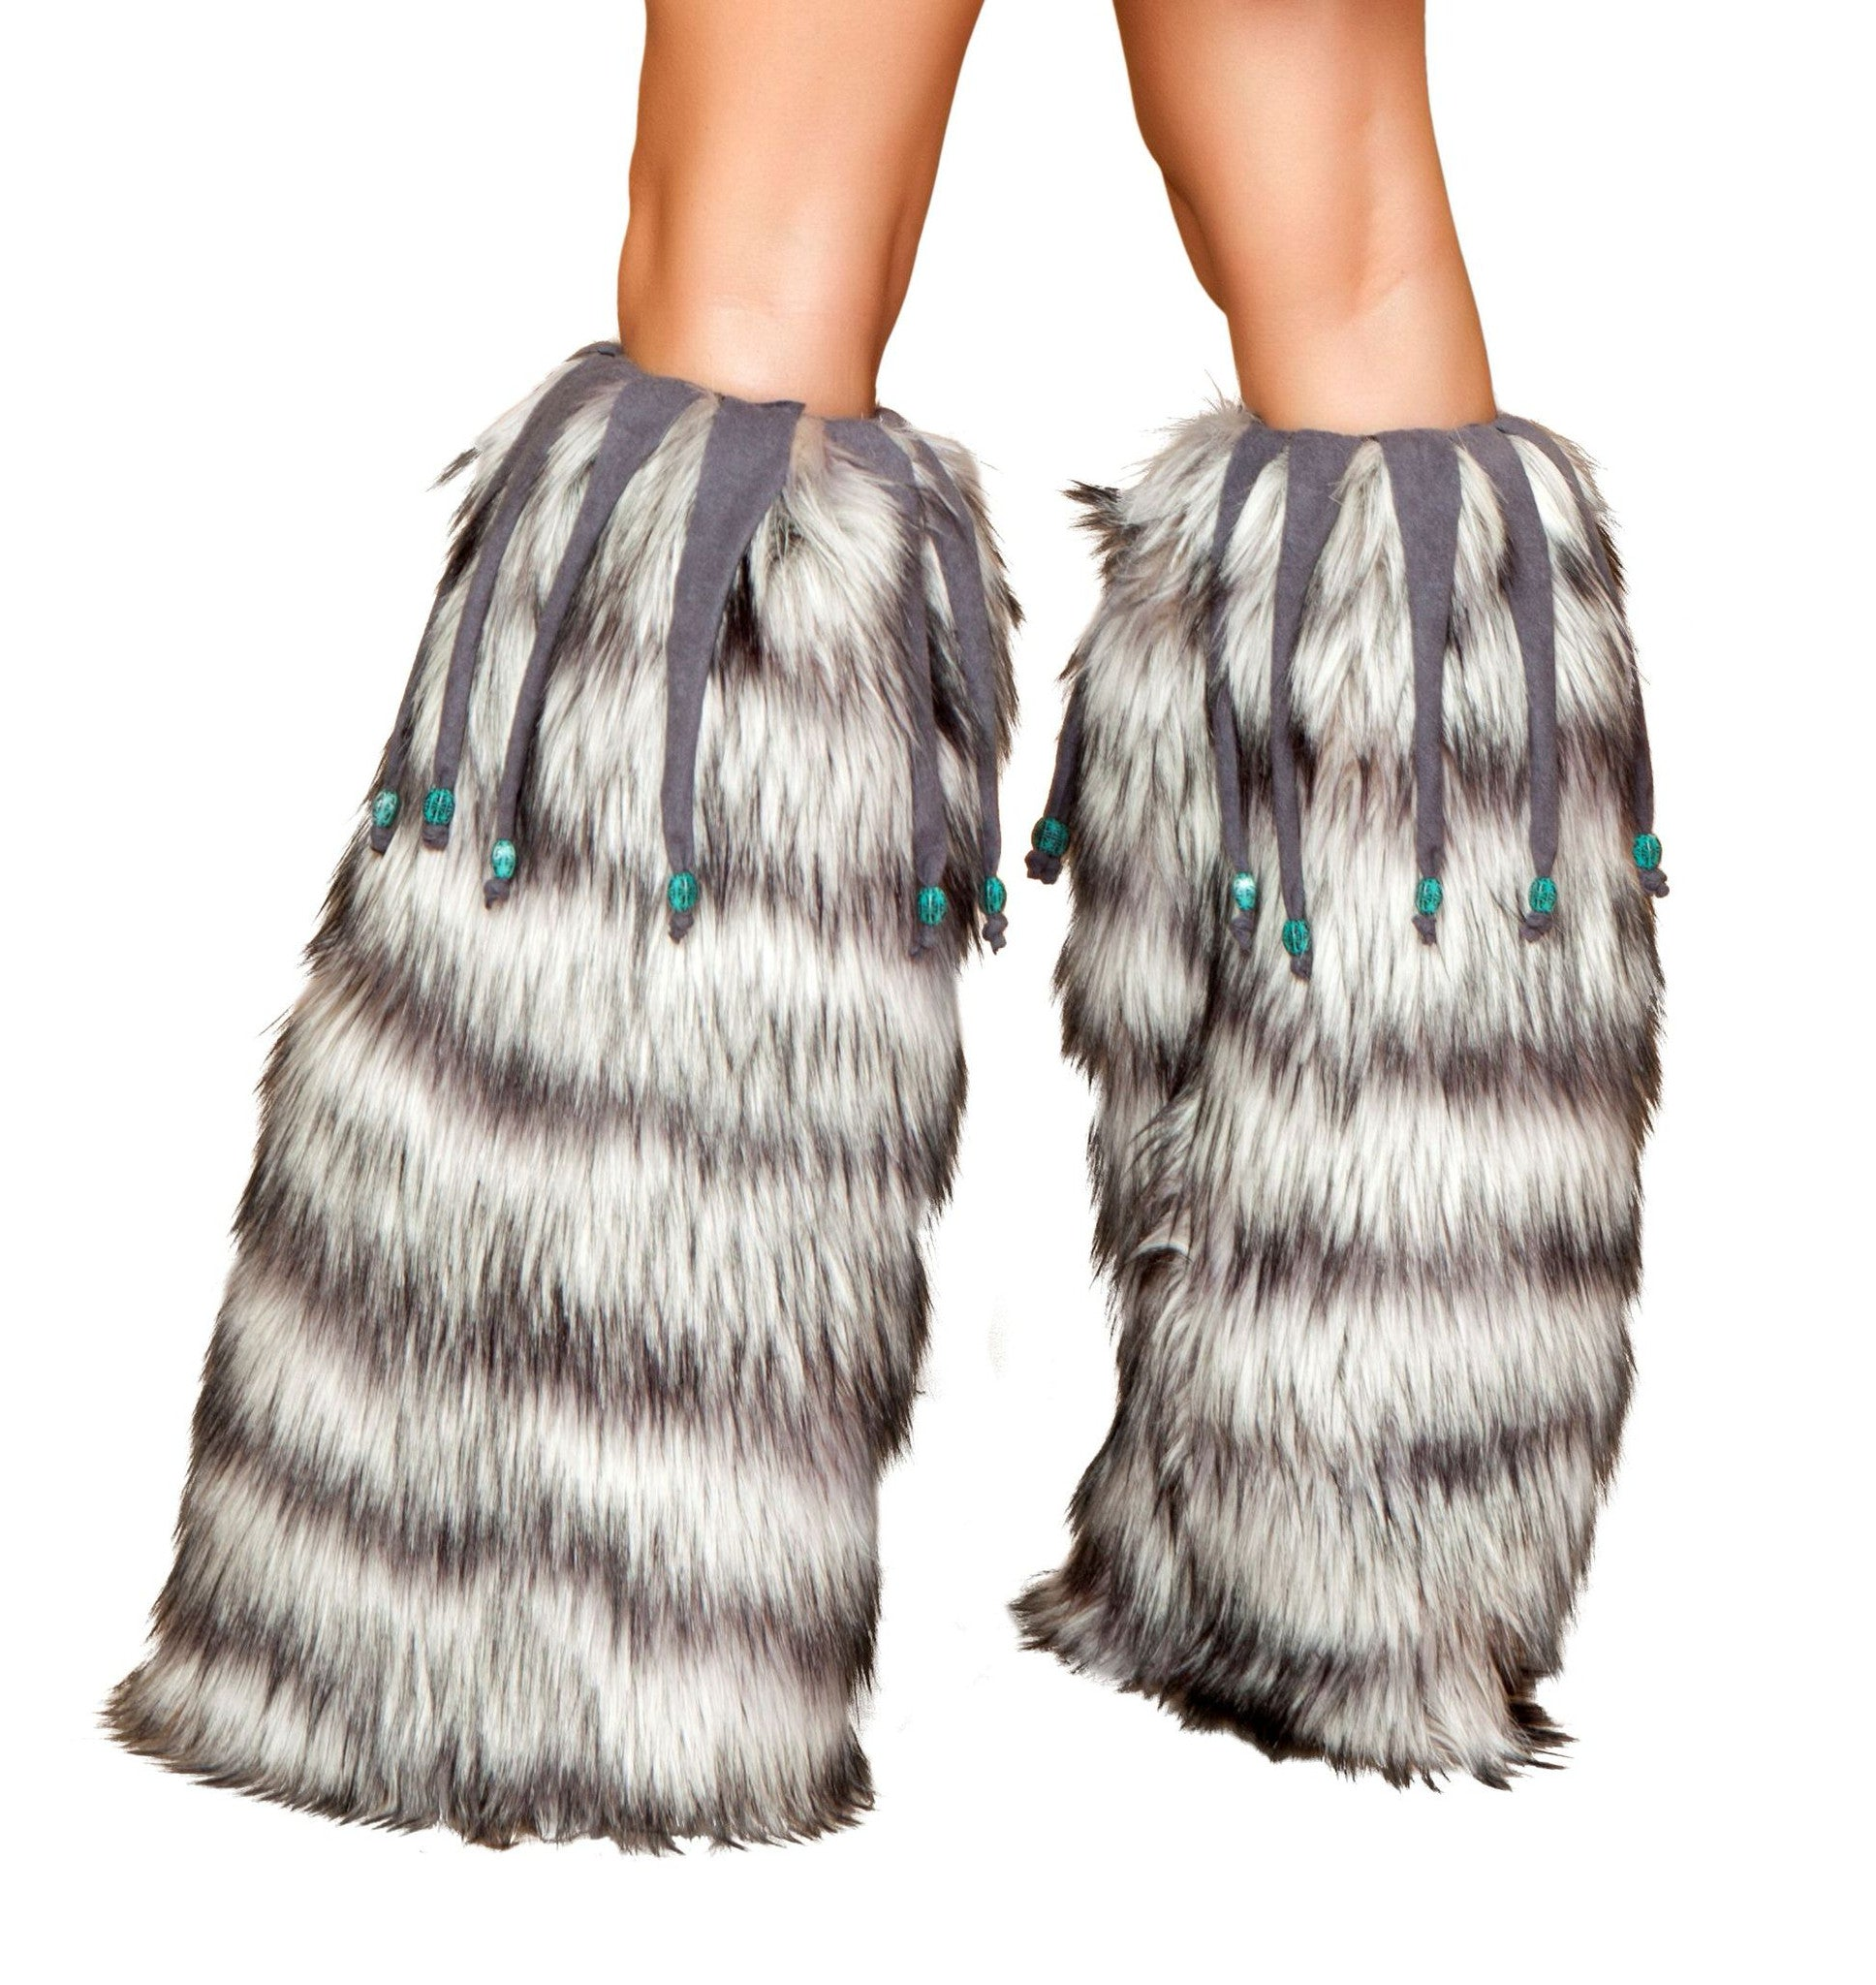 LW4427 Leg Warmers with Beaded Fringe ${description} | Roma Costume and Roma Confidential wholesale manufacturer of Women Apparel bulk world wide wholesale and world wide drop ship services for Adult Halloween Costumes, Sexy and Elegant Lingerie, Rave Clothing, Club wear, and Christmas Costumes. New Products,Accessories, Roma Costume, Inc., Roma Costume, Roma Confidential, Wholesale clothing, drop ship, drop ship service, Wholesale Lingerie, Wholesale Adult Halloween Costumes, Rave Clothing, EDM Clothing, Festival Wear, Christmas Costumes, Clubwear, Club wear.